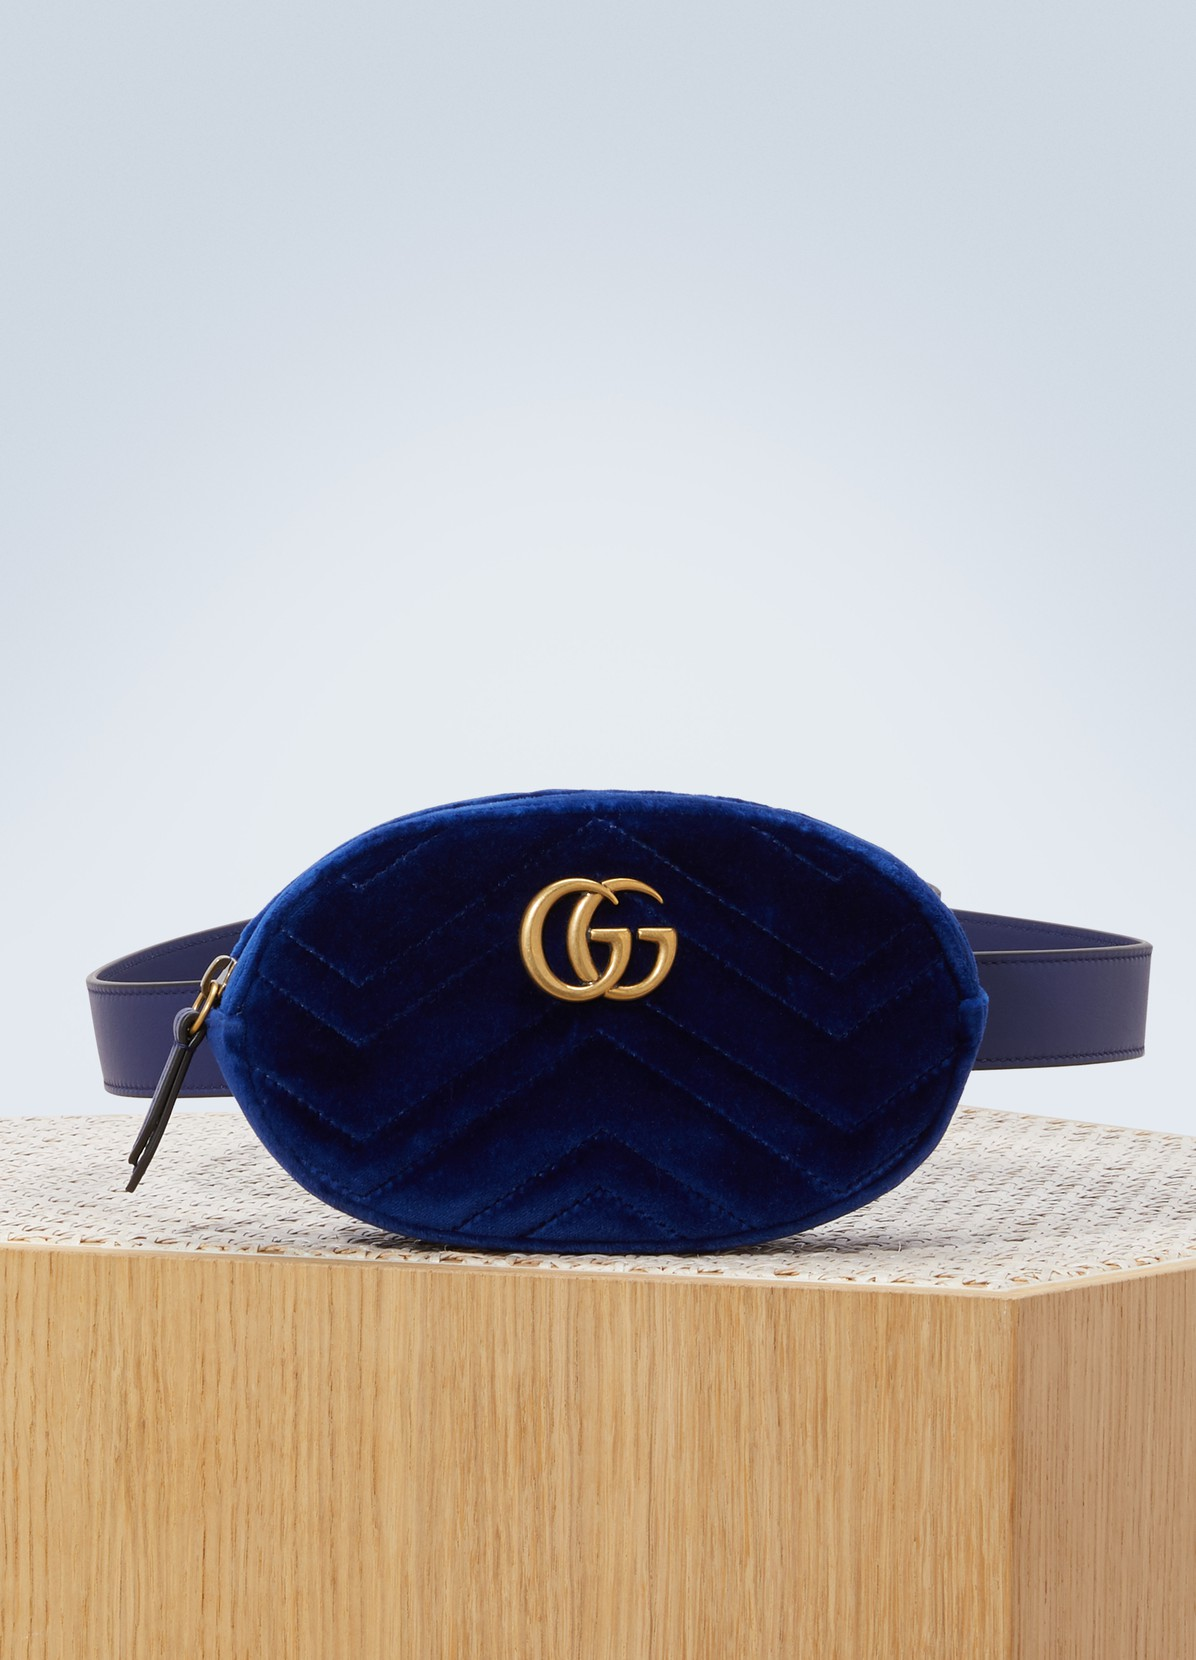 f748b3739c7218 Sac Ceinture Gucci Marmont Occasion | The Art of Mike Mignola